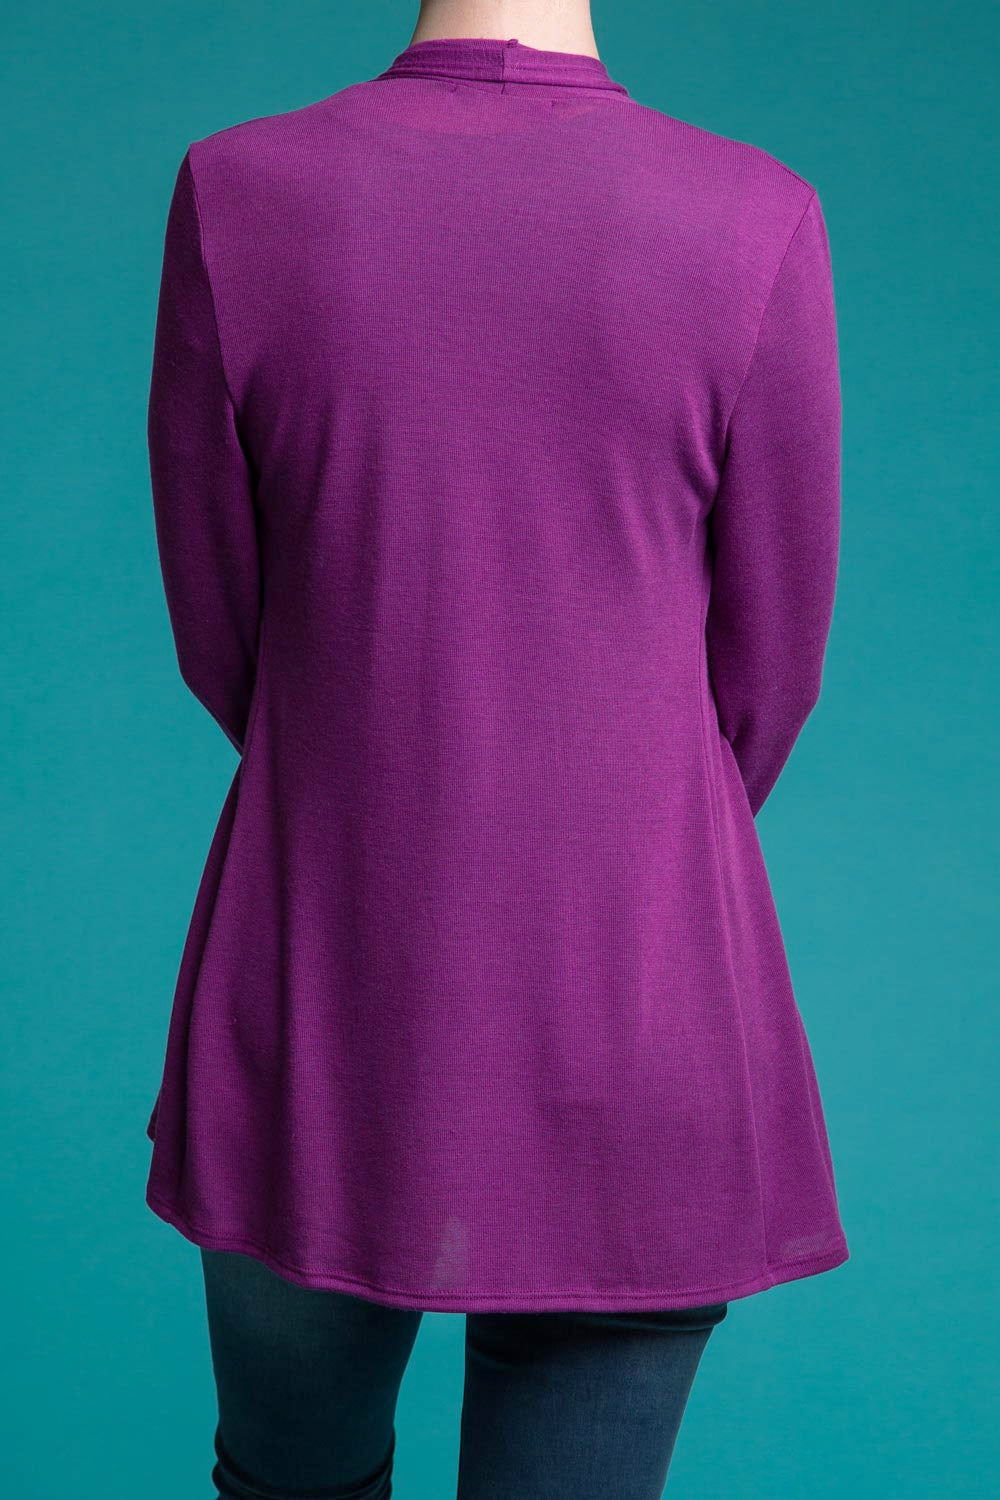 Type 3 My Kind Of Magenta Cardigan